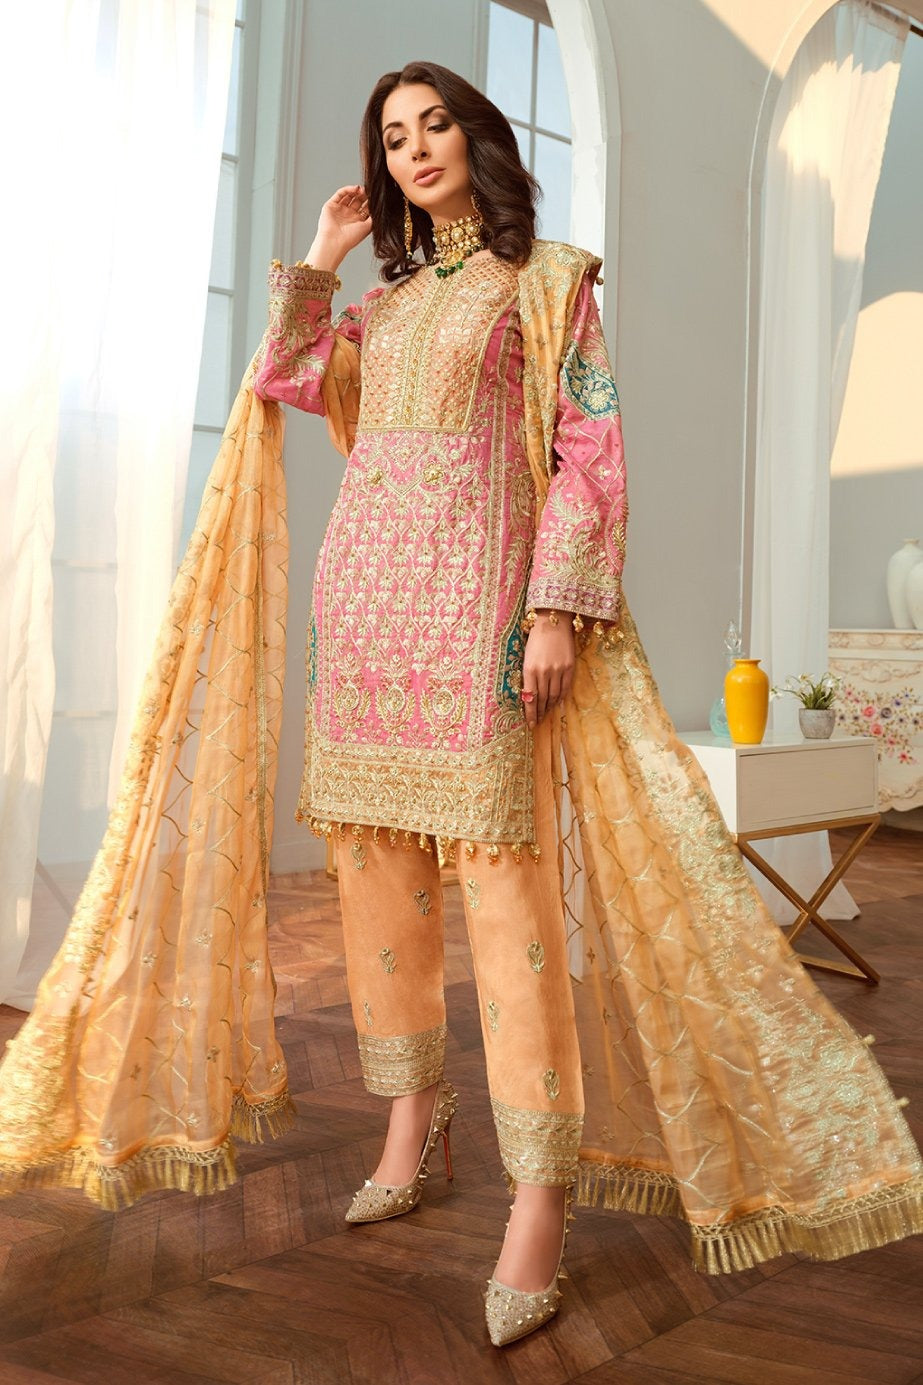 Shamrock Maryum & Maria Premium Chiffon Collection 2020 – SF-06-Online Pakistani designer dress Anarkali Suits Party Werar Indian Dresses Pakistani Dresses